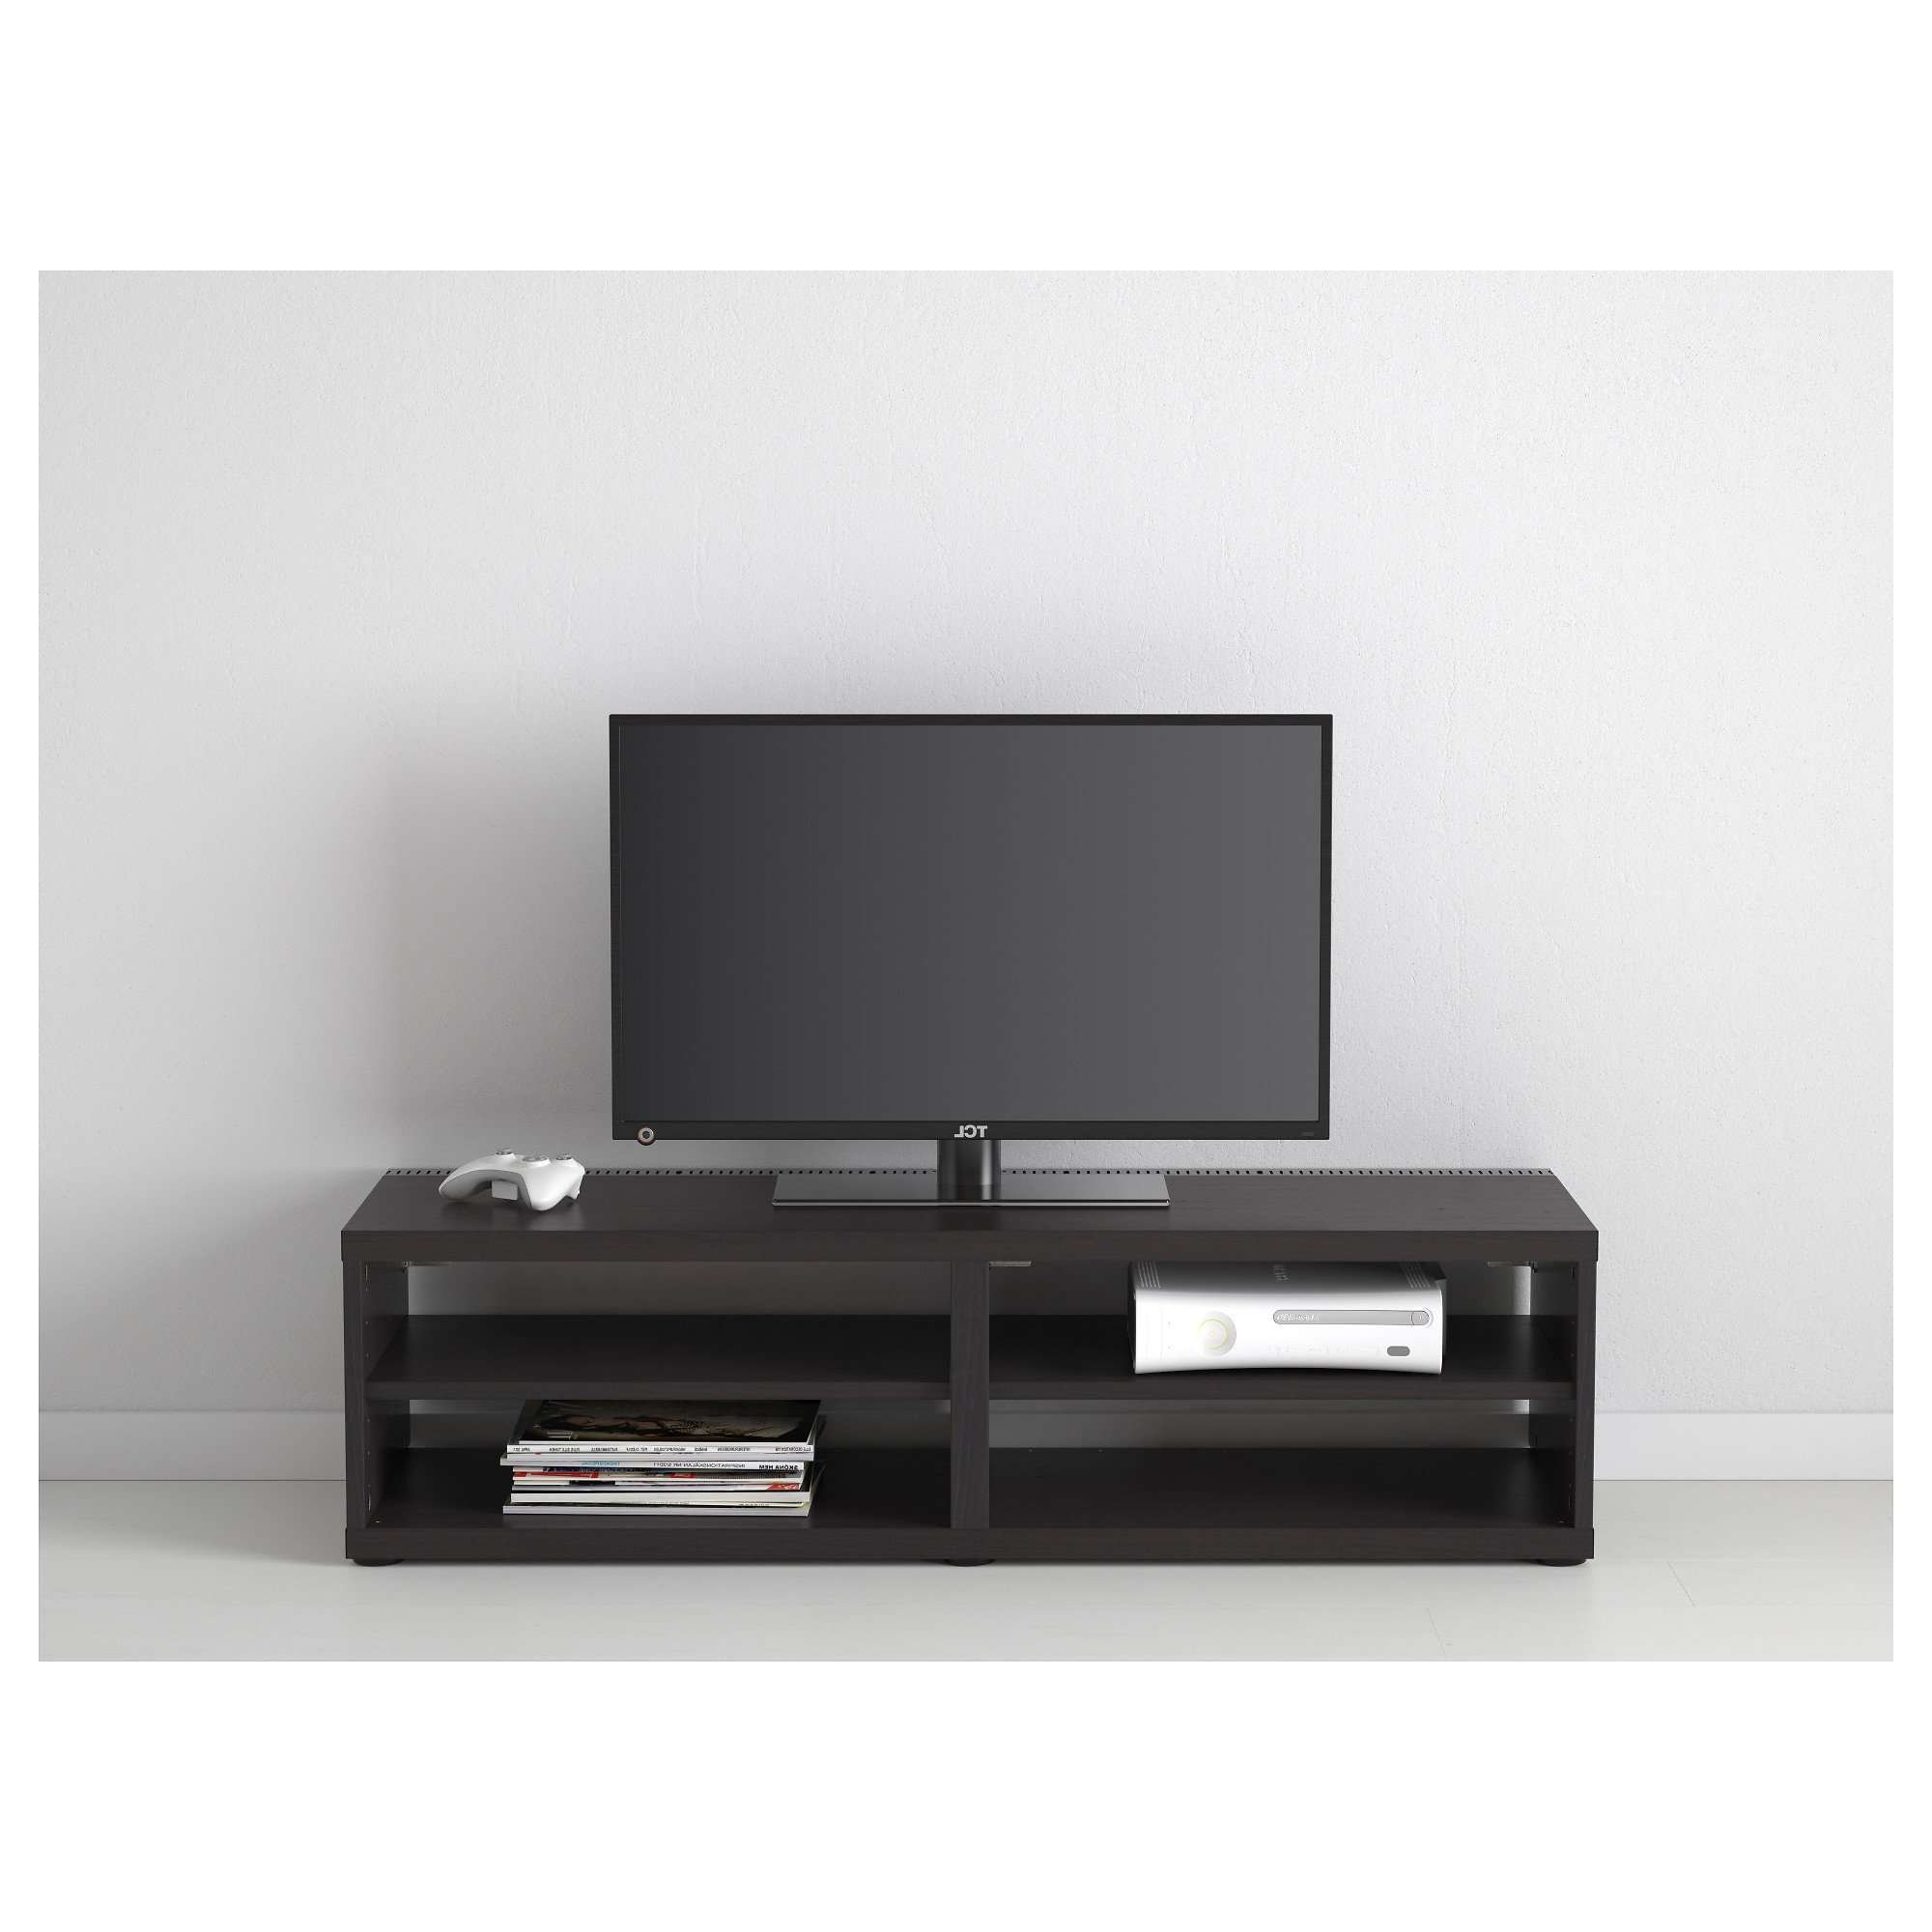 Ikea Besta Tv Stand With Long Black Wooden Tv Stand Having Wooden Pertaining To Long Black Tv Stands (View 11 of 15)